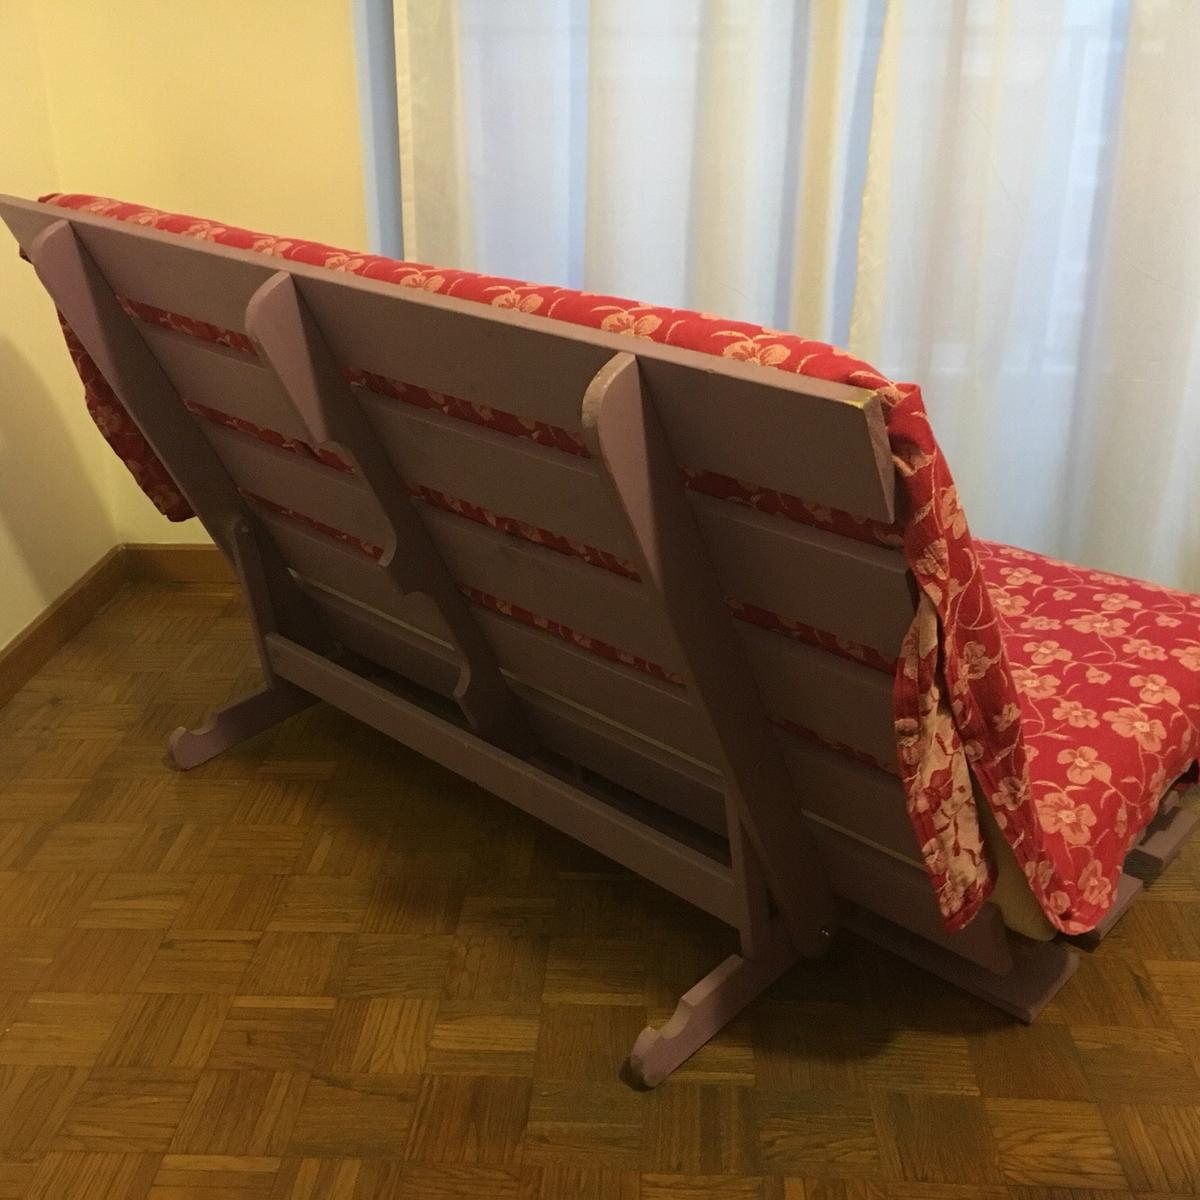 Divano Letto Futon Ikea.Divano Letto Futon Ikea In 10152 Torino For 60 00 For Sale Shpock